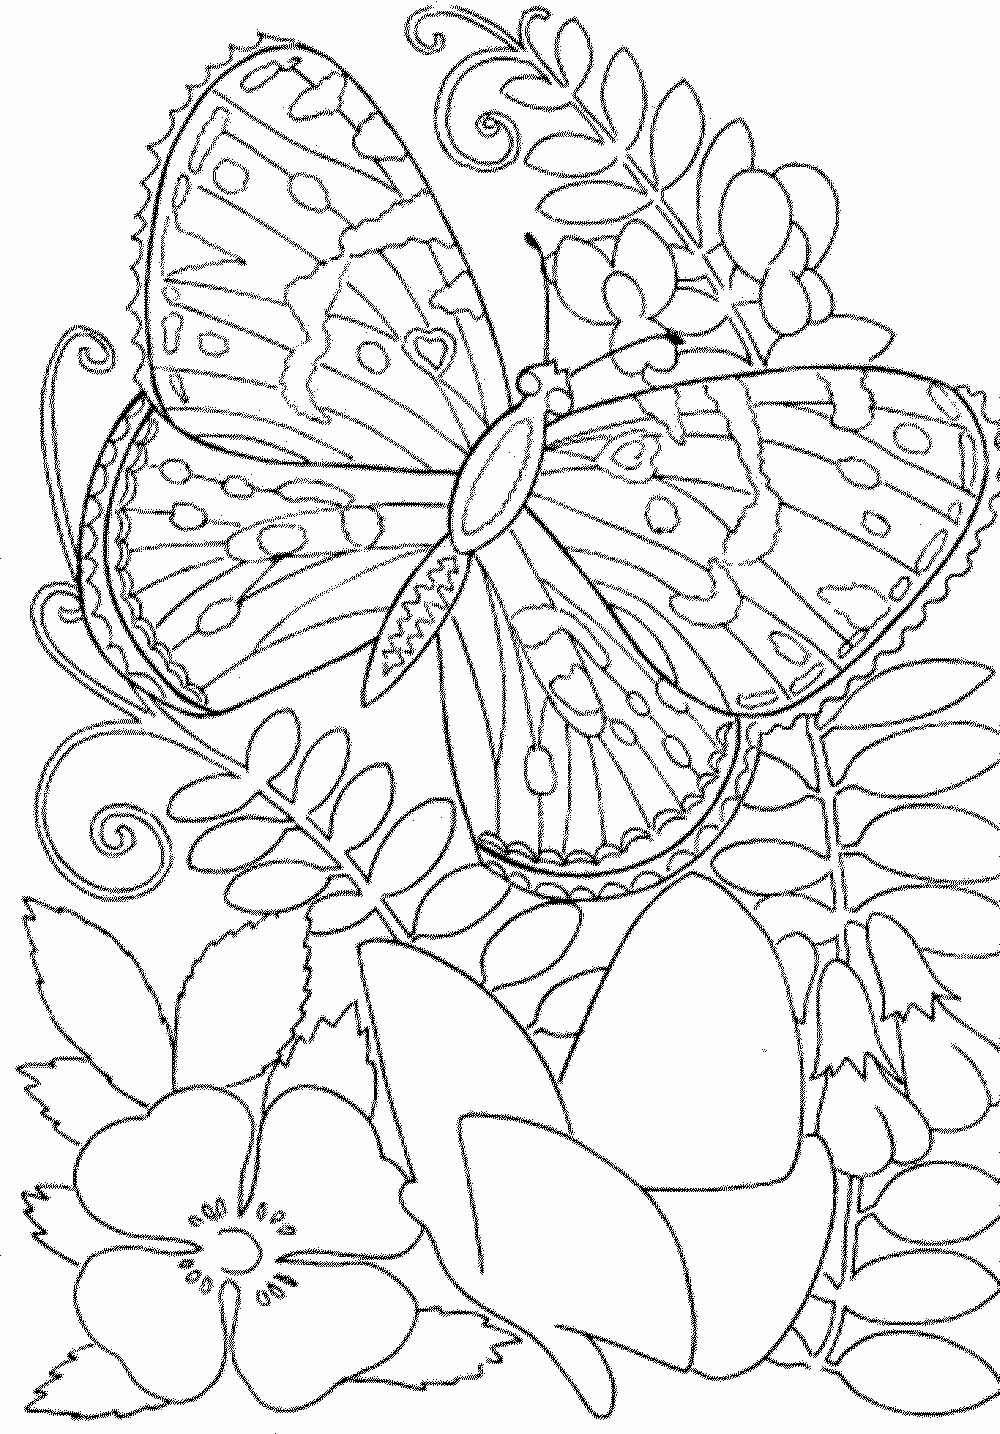 Pin By Melly Chaplin On Coloring Pages In 2020 Butterfly Coloring Page Spring Coloring Pages Flower Coloring Pages